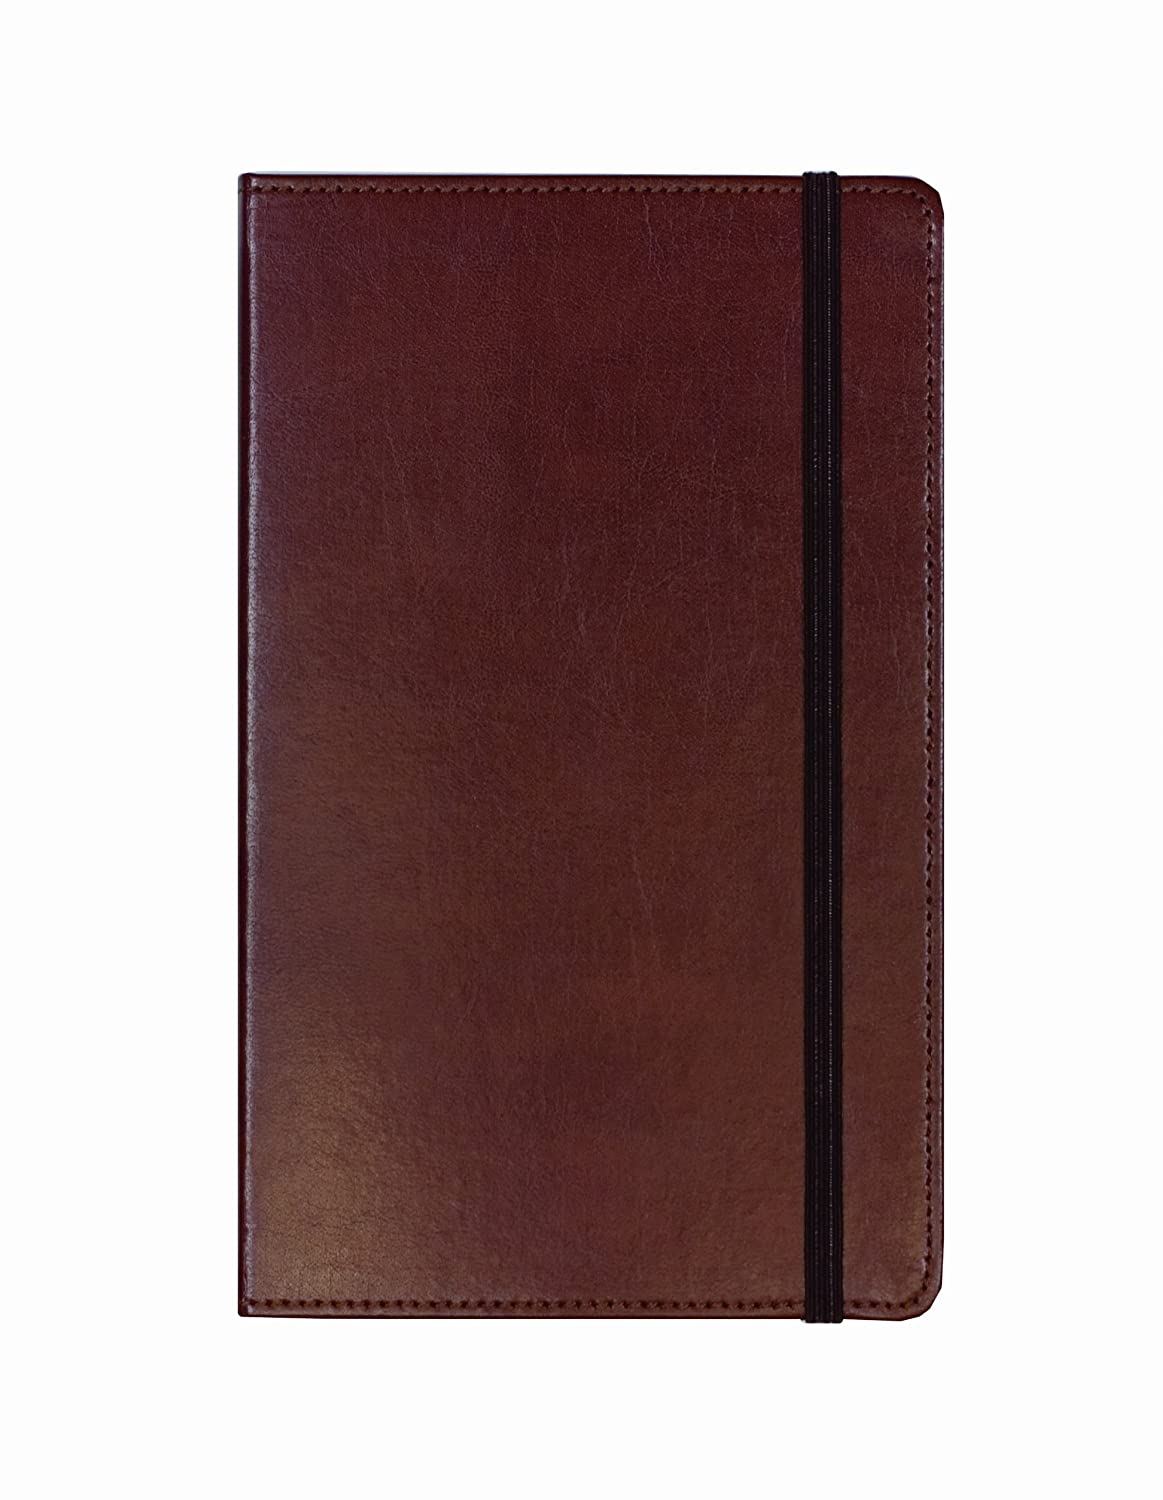 Markings by C.R. Gibson Ruled Paper Black Bonded Leather Journal (MJ5-4791) C.R. Gibson-OS